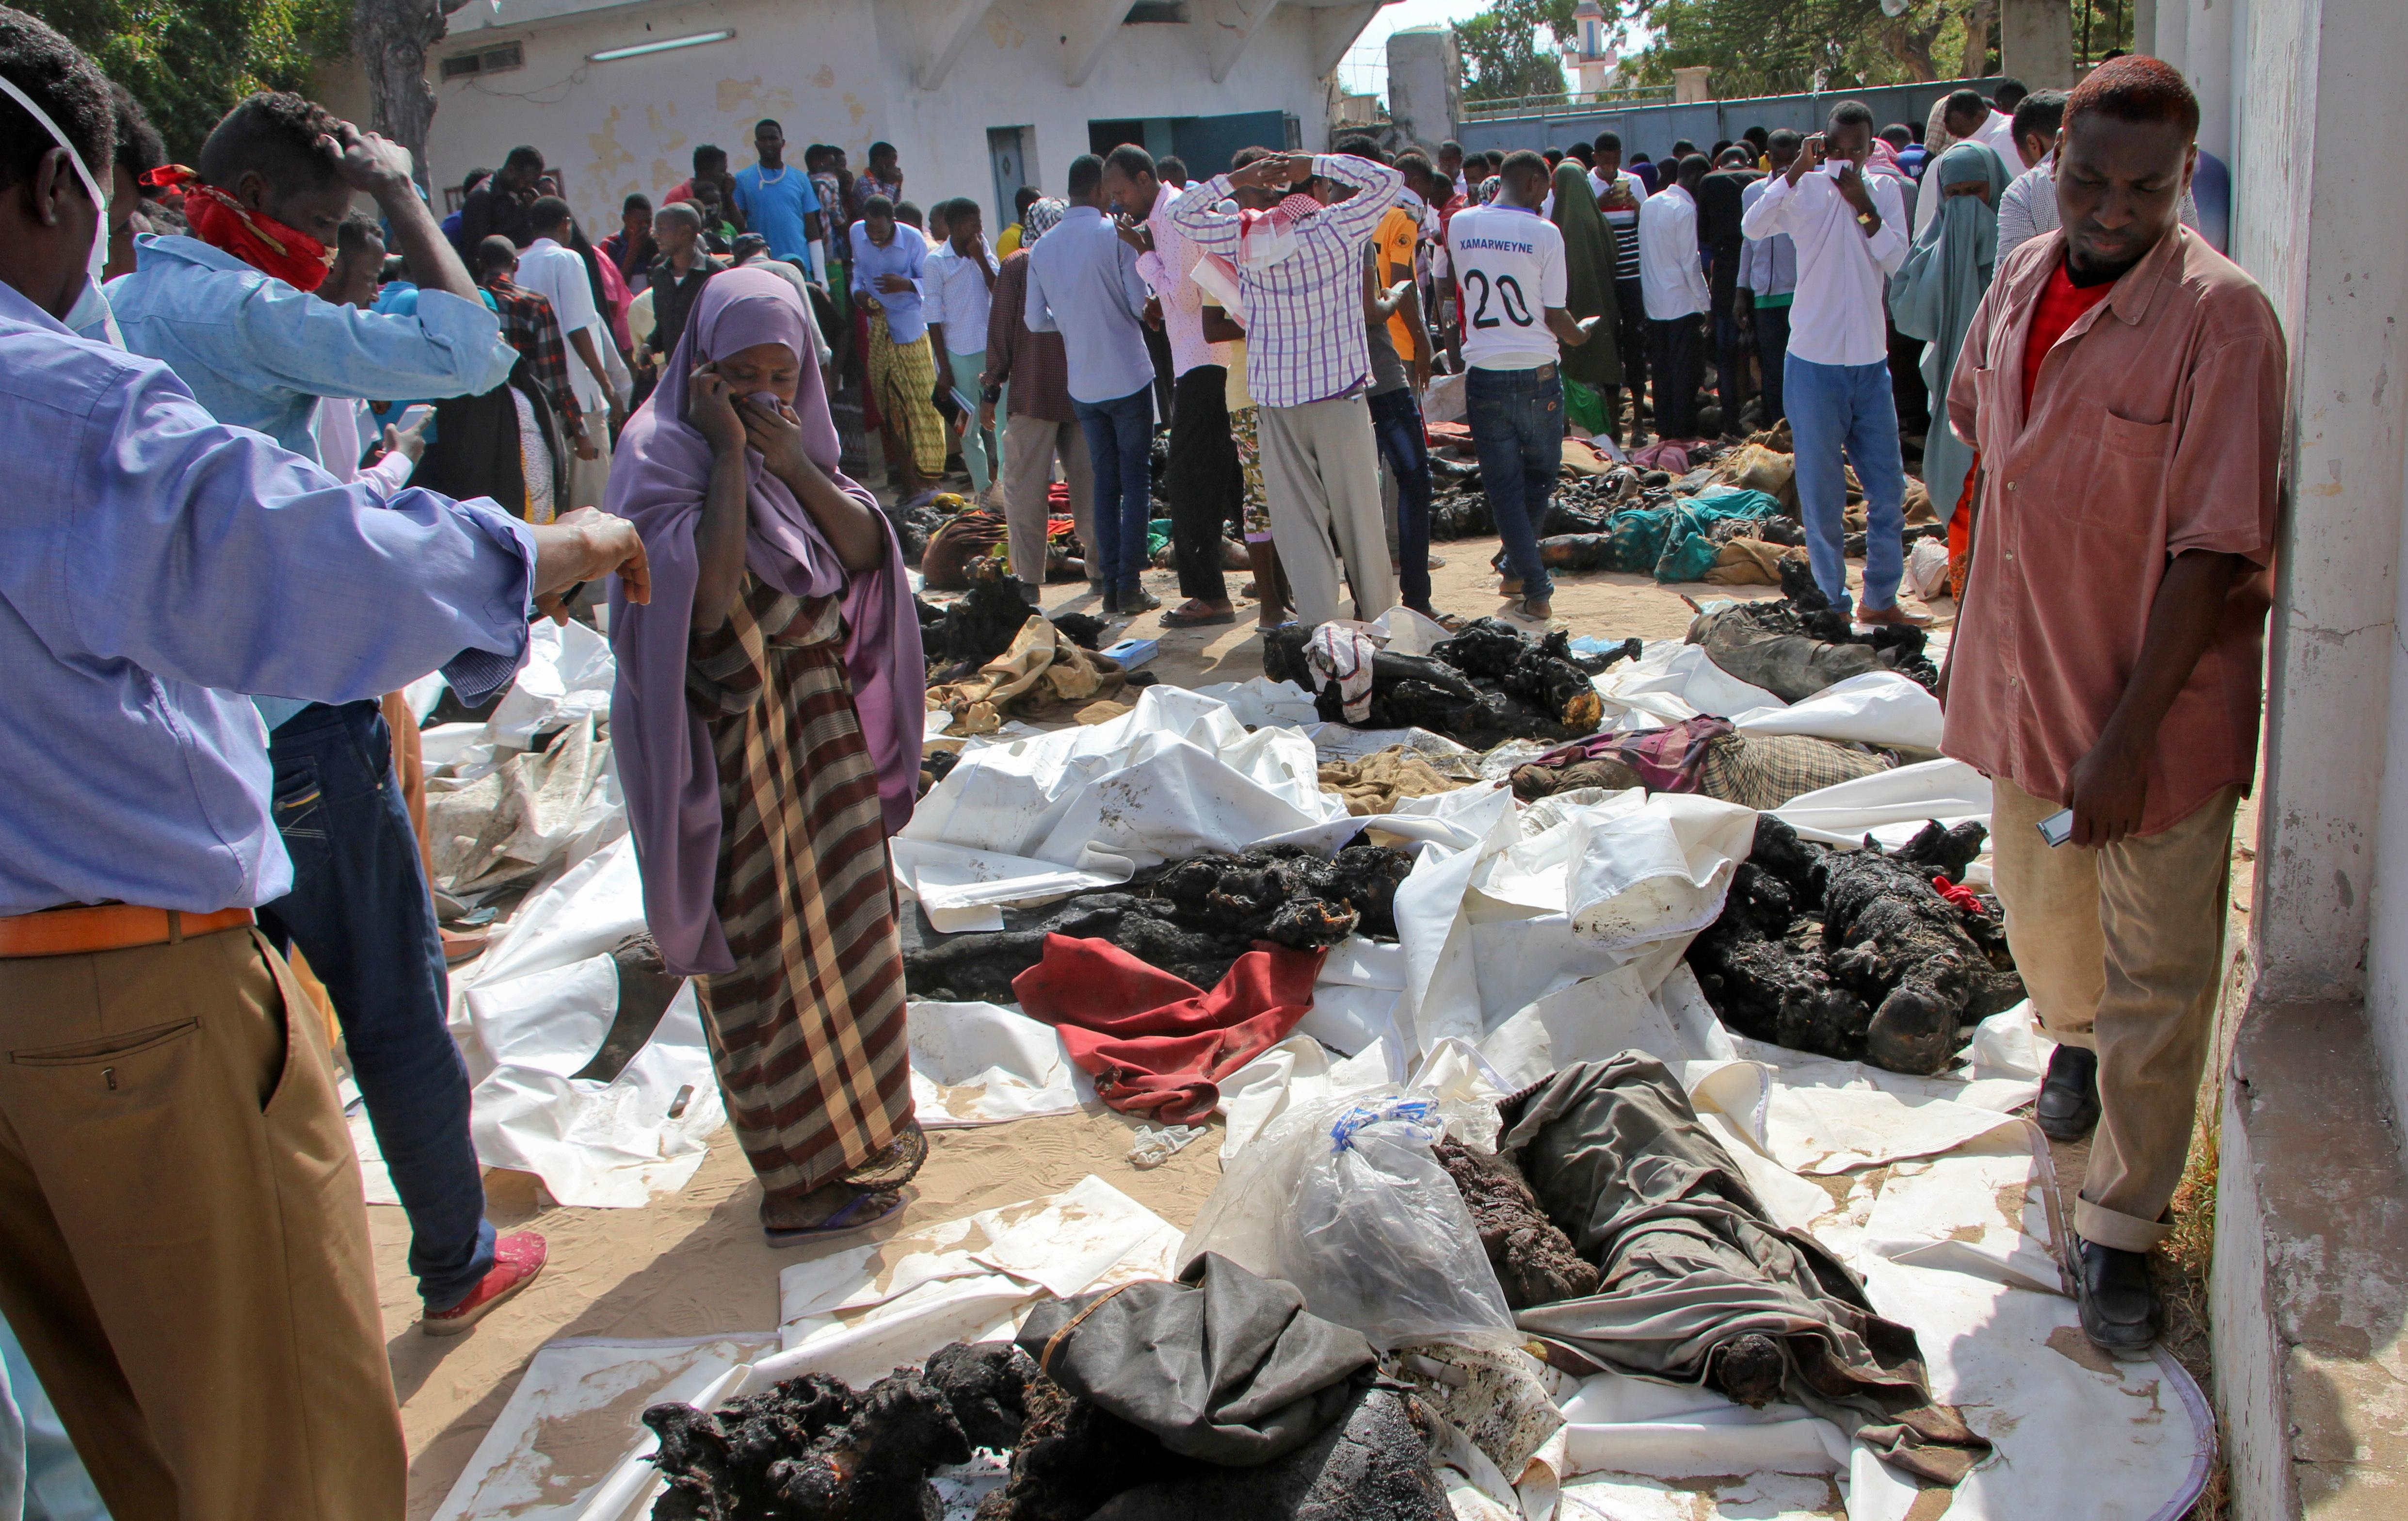 EDS NOTE: GRAPHIC CONTENT. A Somali woman reacts as she stands by the remains of victims of Saturday's blast, in Mogadishu, Somalia, Sunday, Oct. 15, 2017.  The death toll from the most powerful bomb blast witnessed in Somalia's capital rose Sunday to at least 189 with more than 200 injured, making it the deadliest single attack ever in the Horn of Africa nation, police and hospital sources said. (AP Photo/Farah Abdi Warsameh)